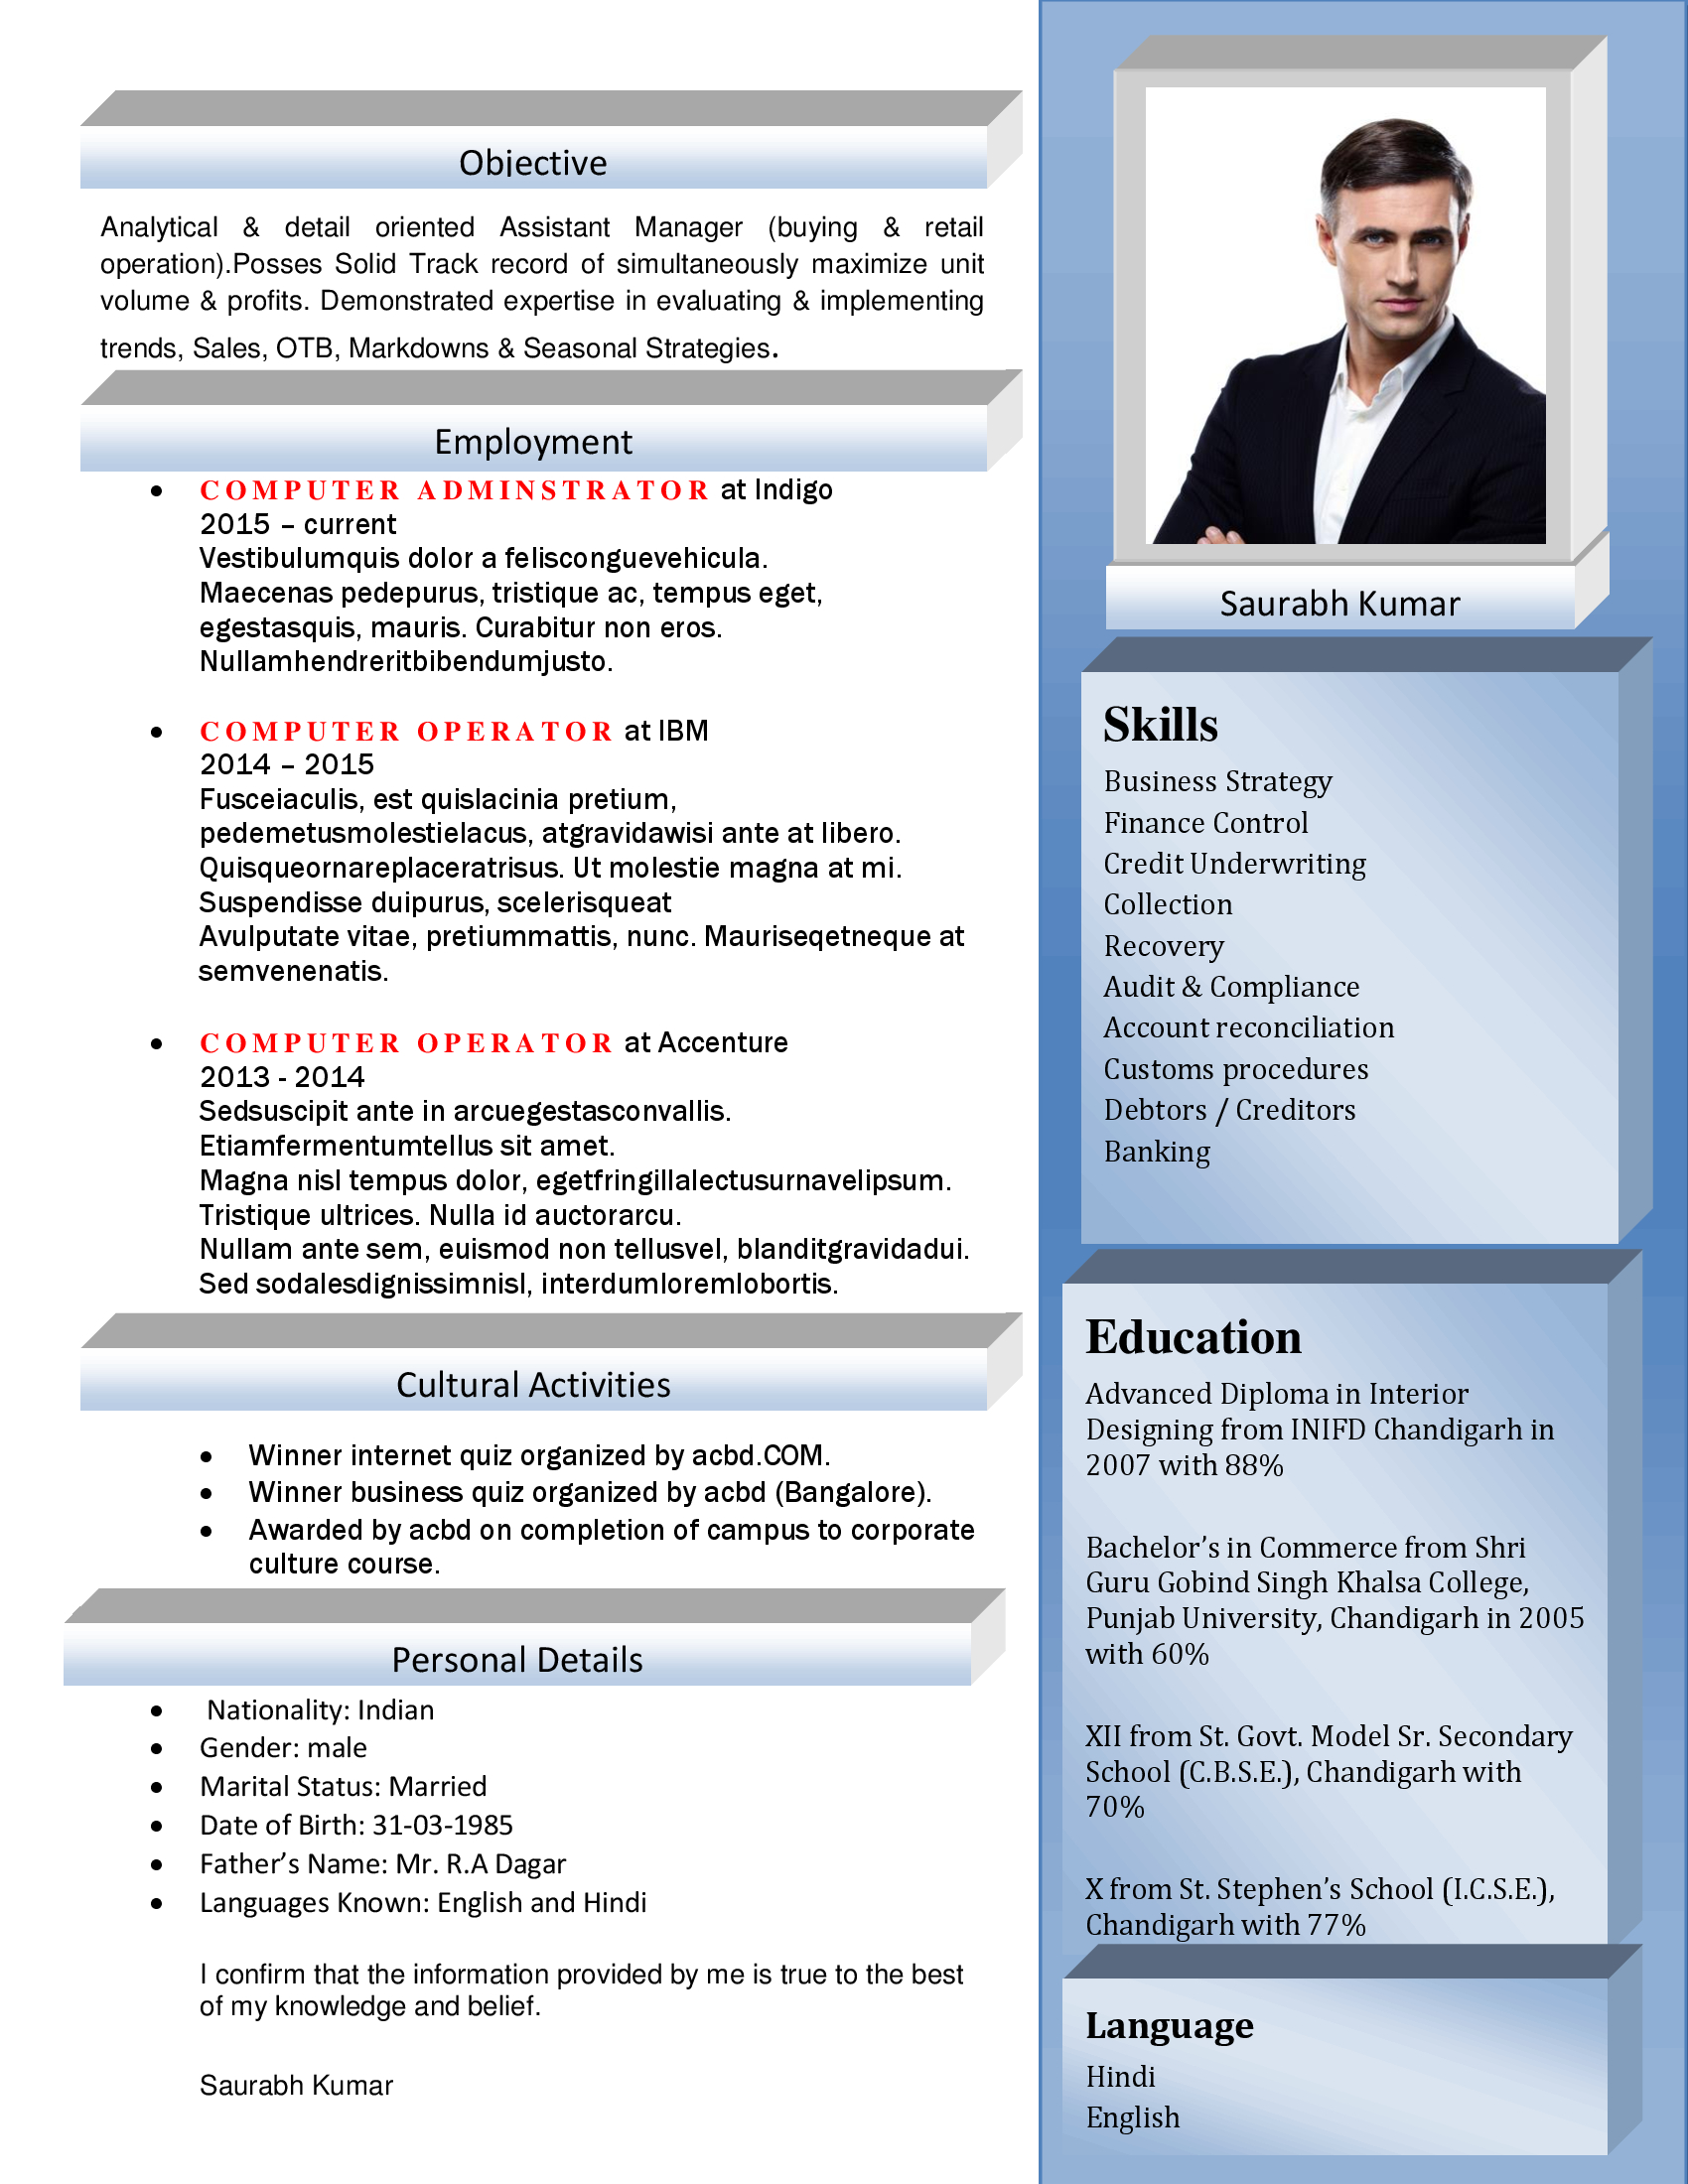 resume format in canada resume best20resume20 201png hr resume format ...